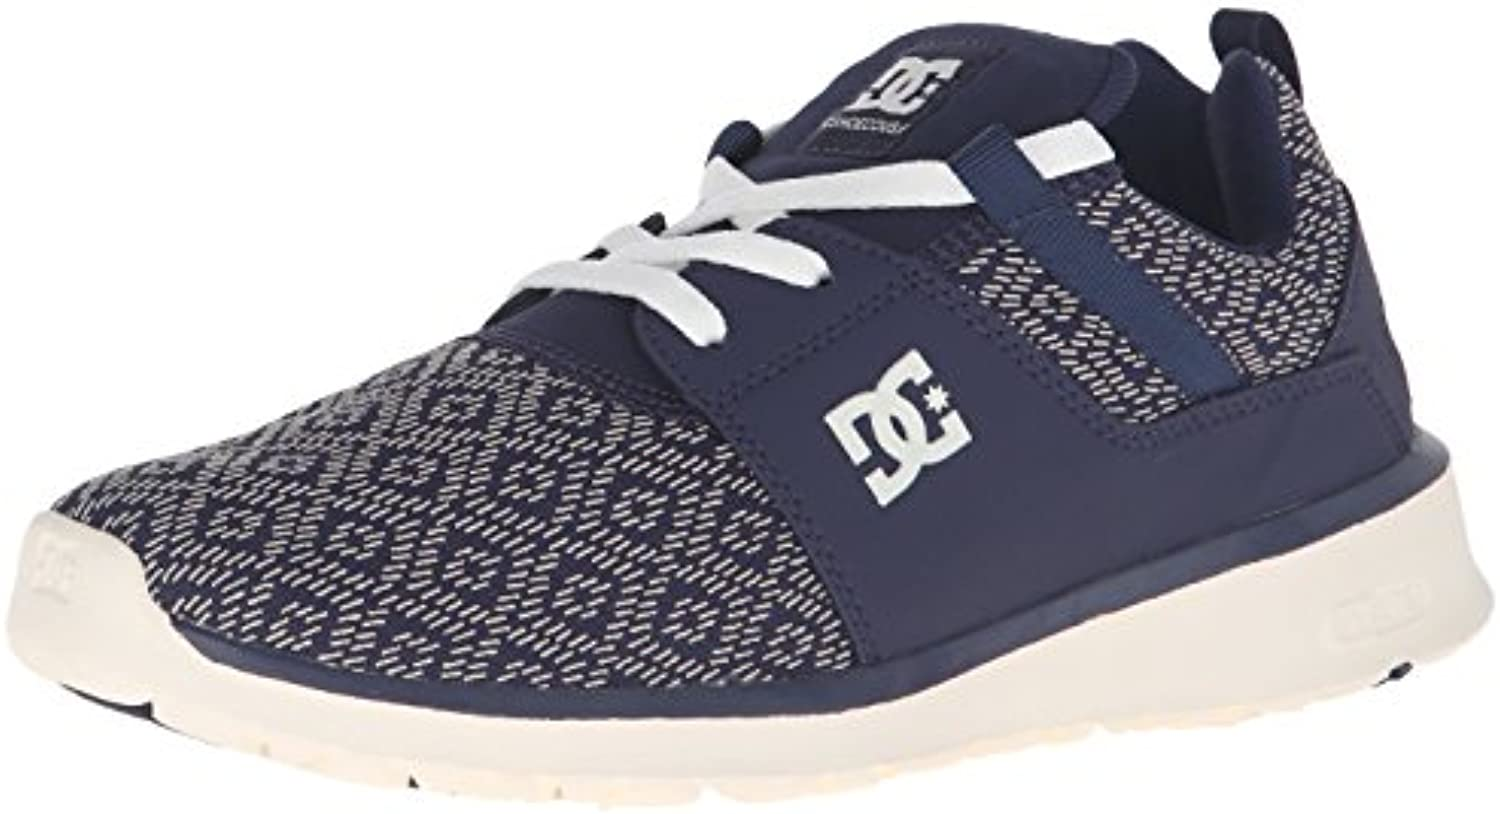 DC Heathrow SE Low Top Shoe  Navy  7.5 M US